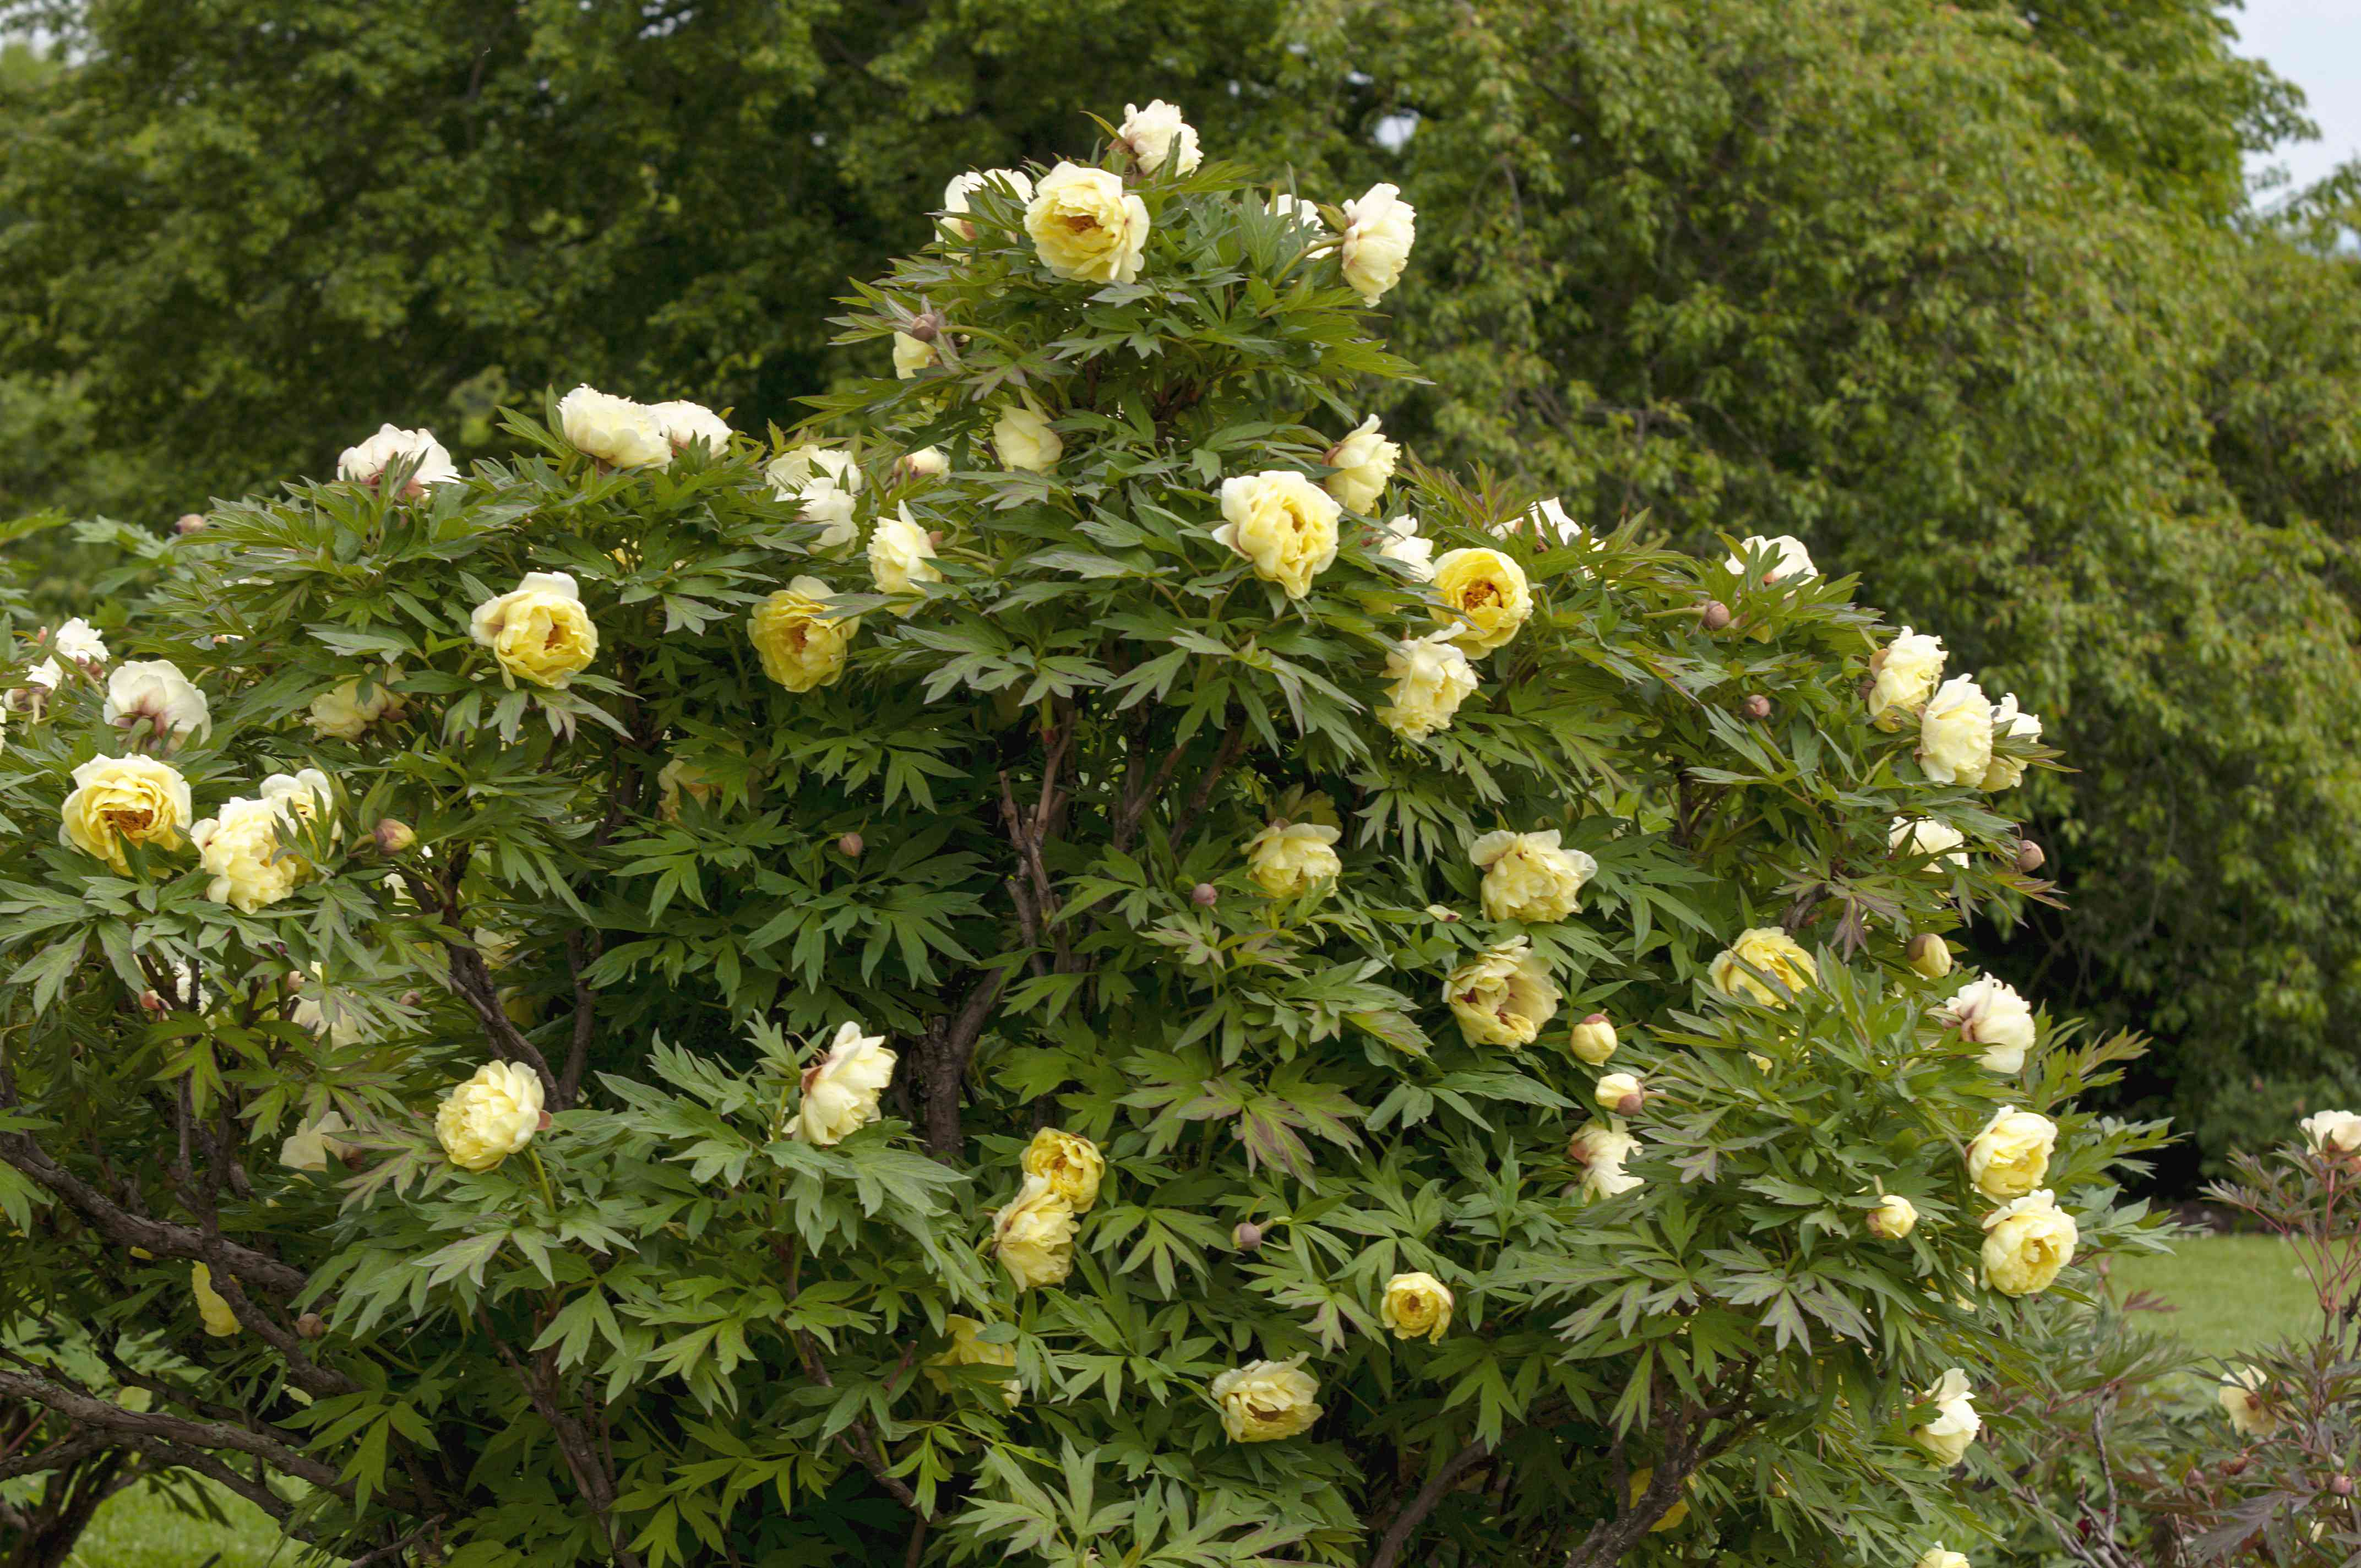 Itoh peony bush with yellow flowers in garden